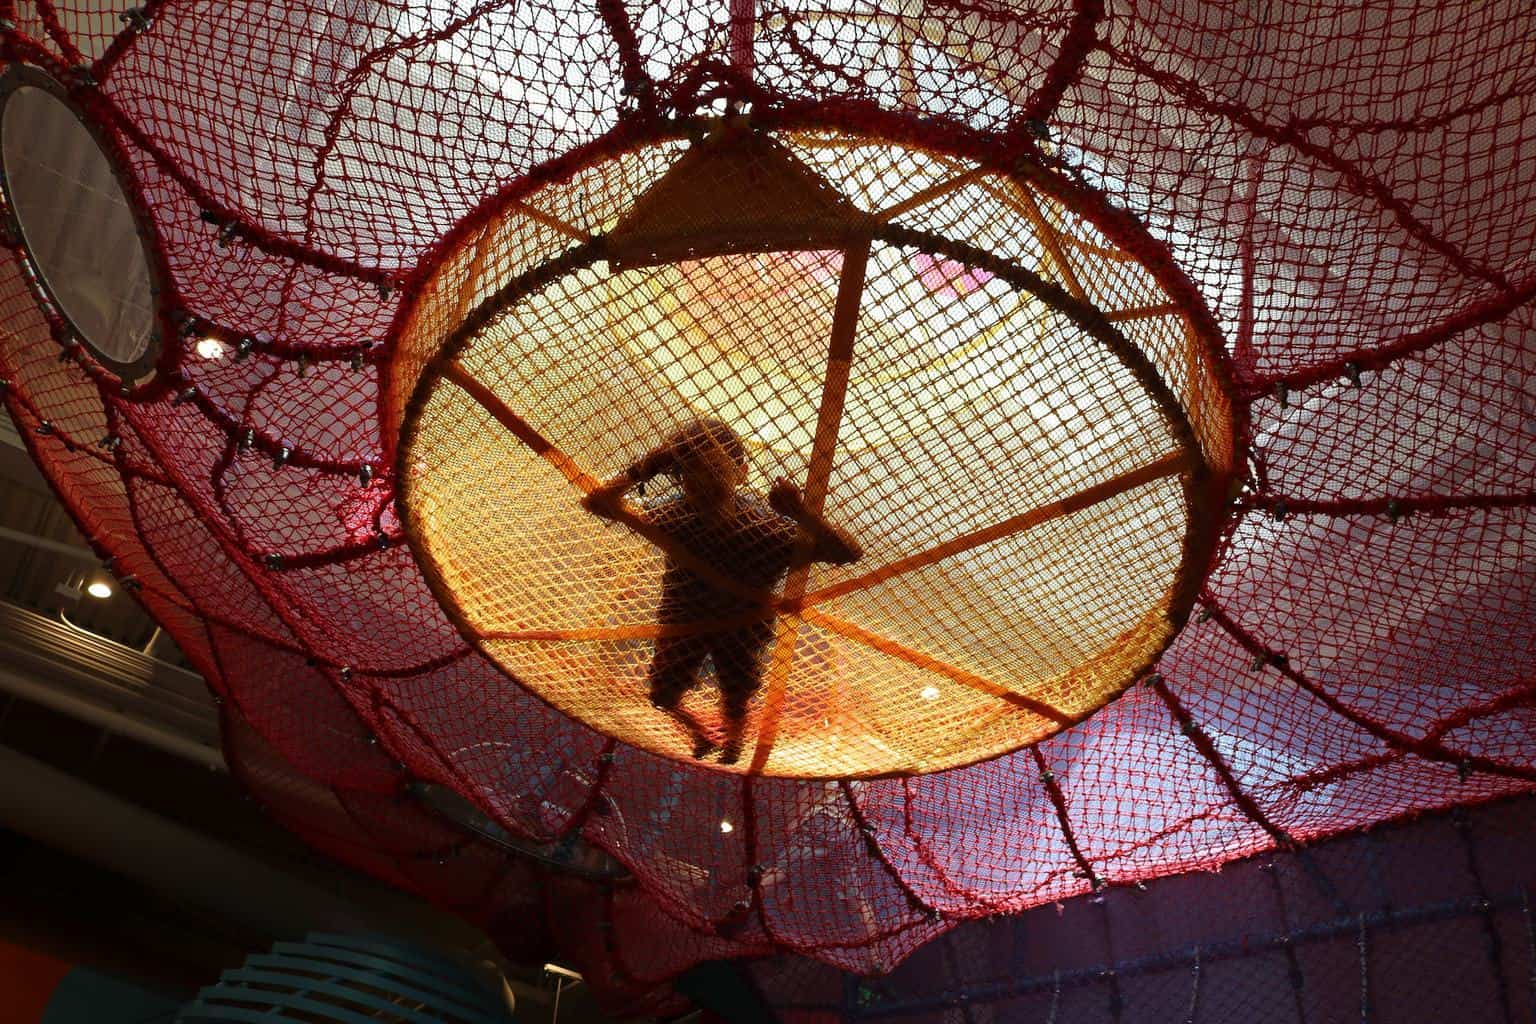 children playing on the spider ball at Cayton Children's Museum in Santa Monica